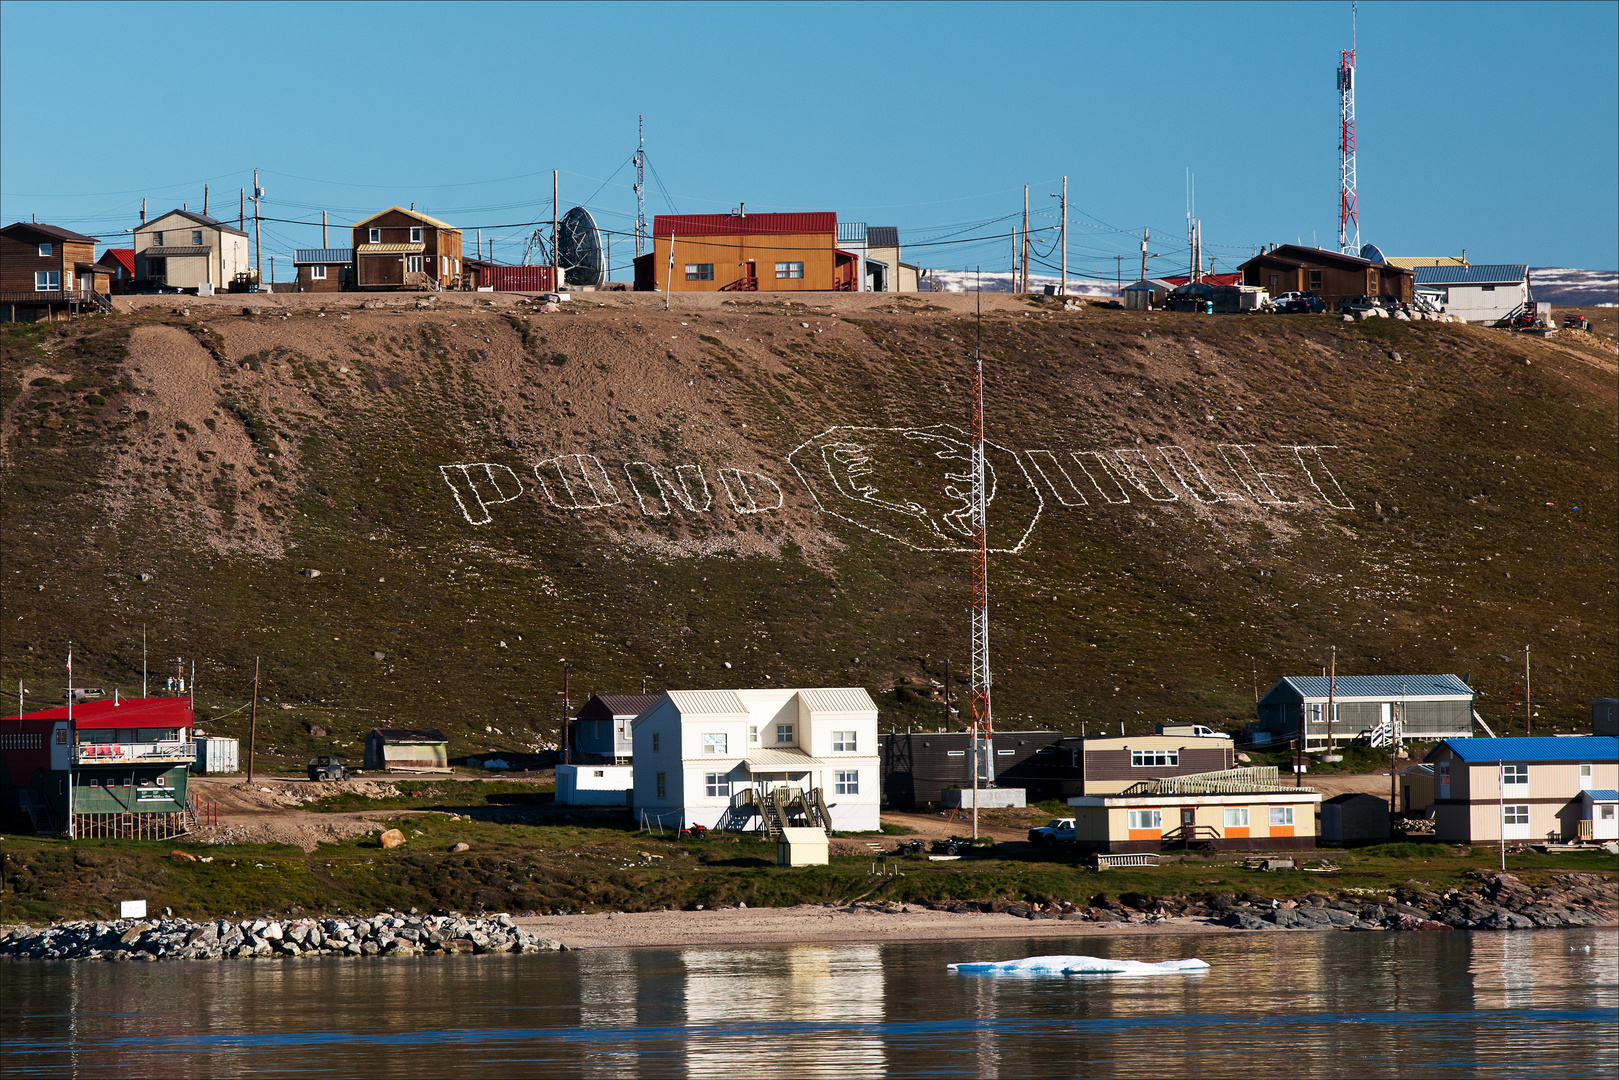 [ Welcome to Pond Inlet ]